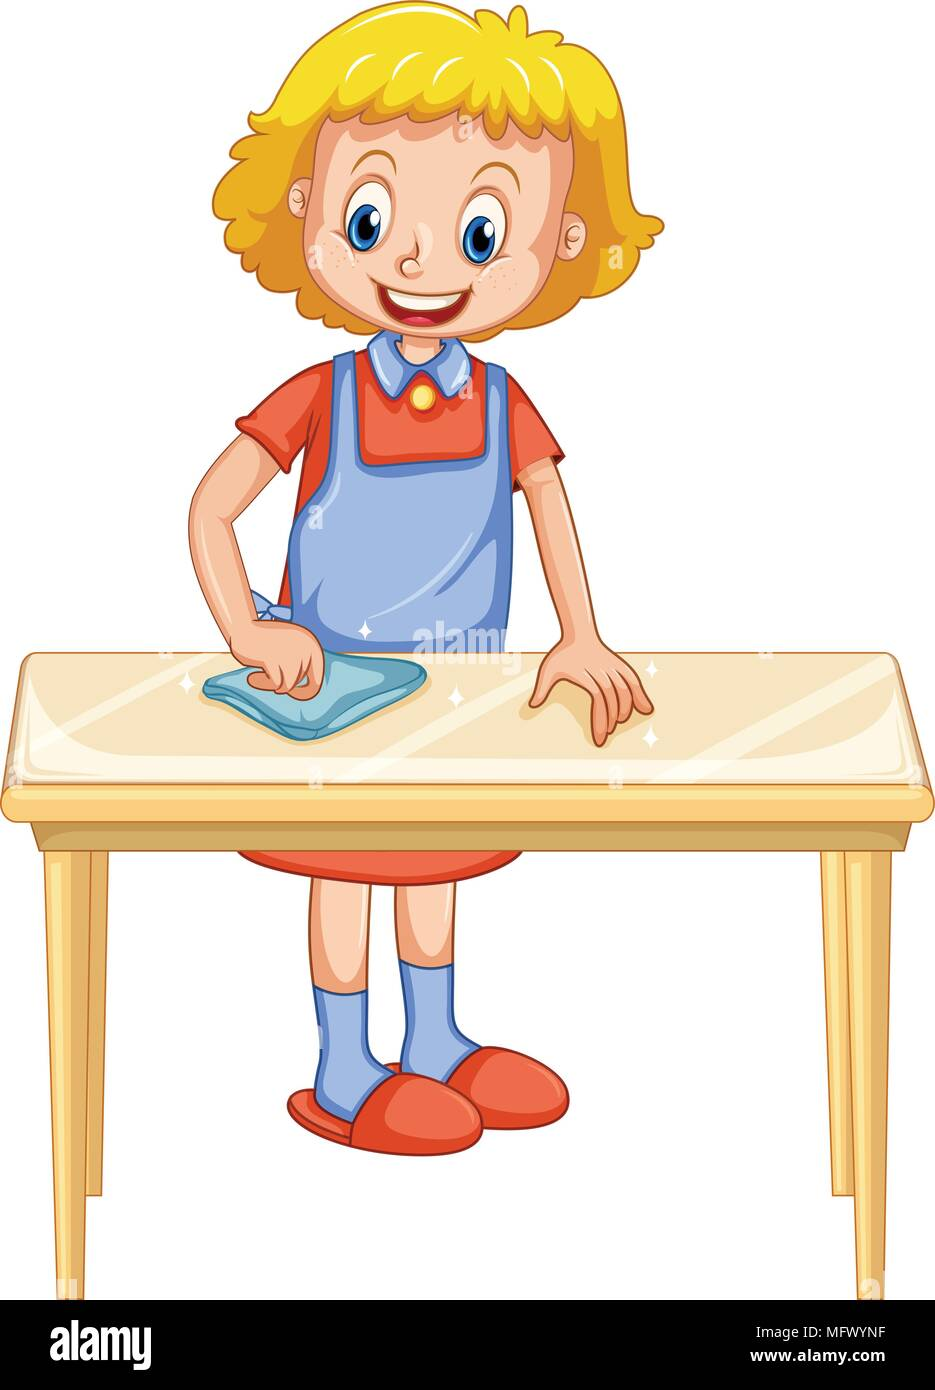 Lady Cleaning Kitchen Table Stock Photos Amp Lady Cleaning